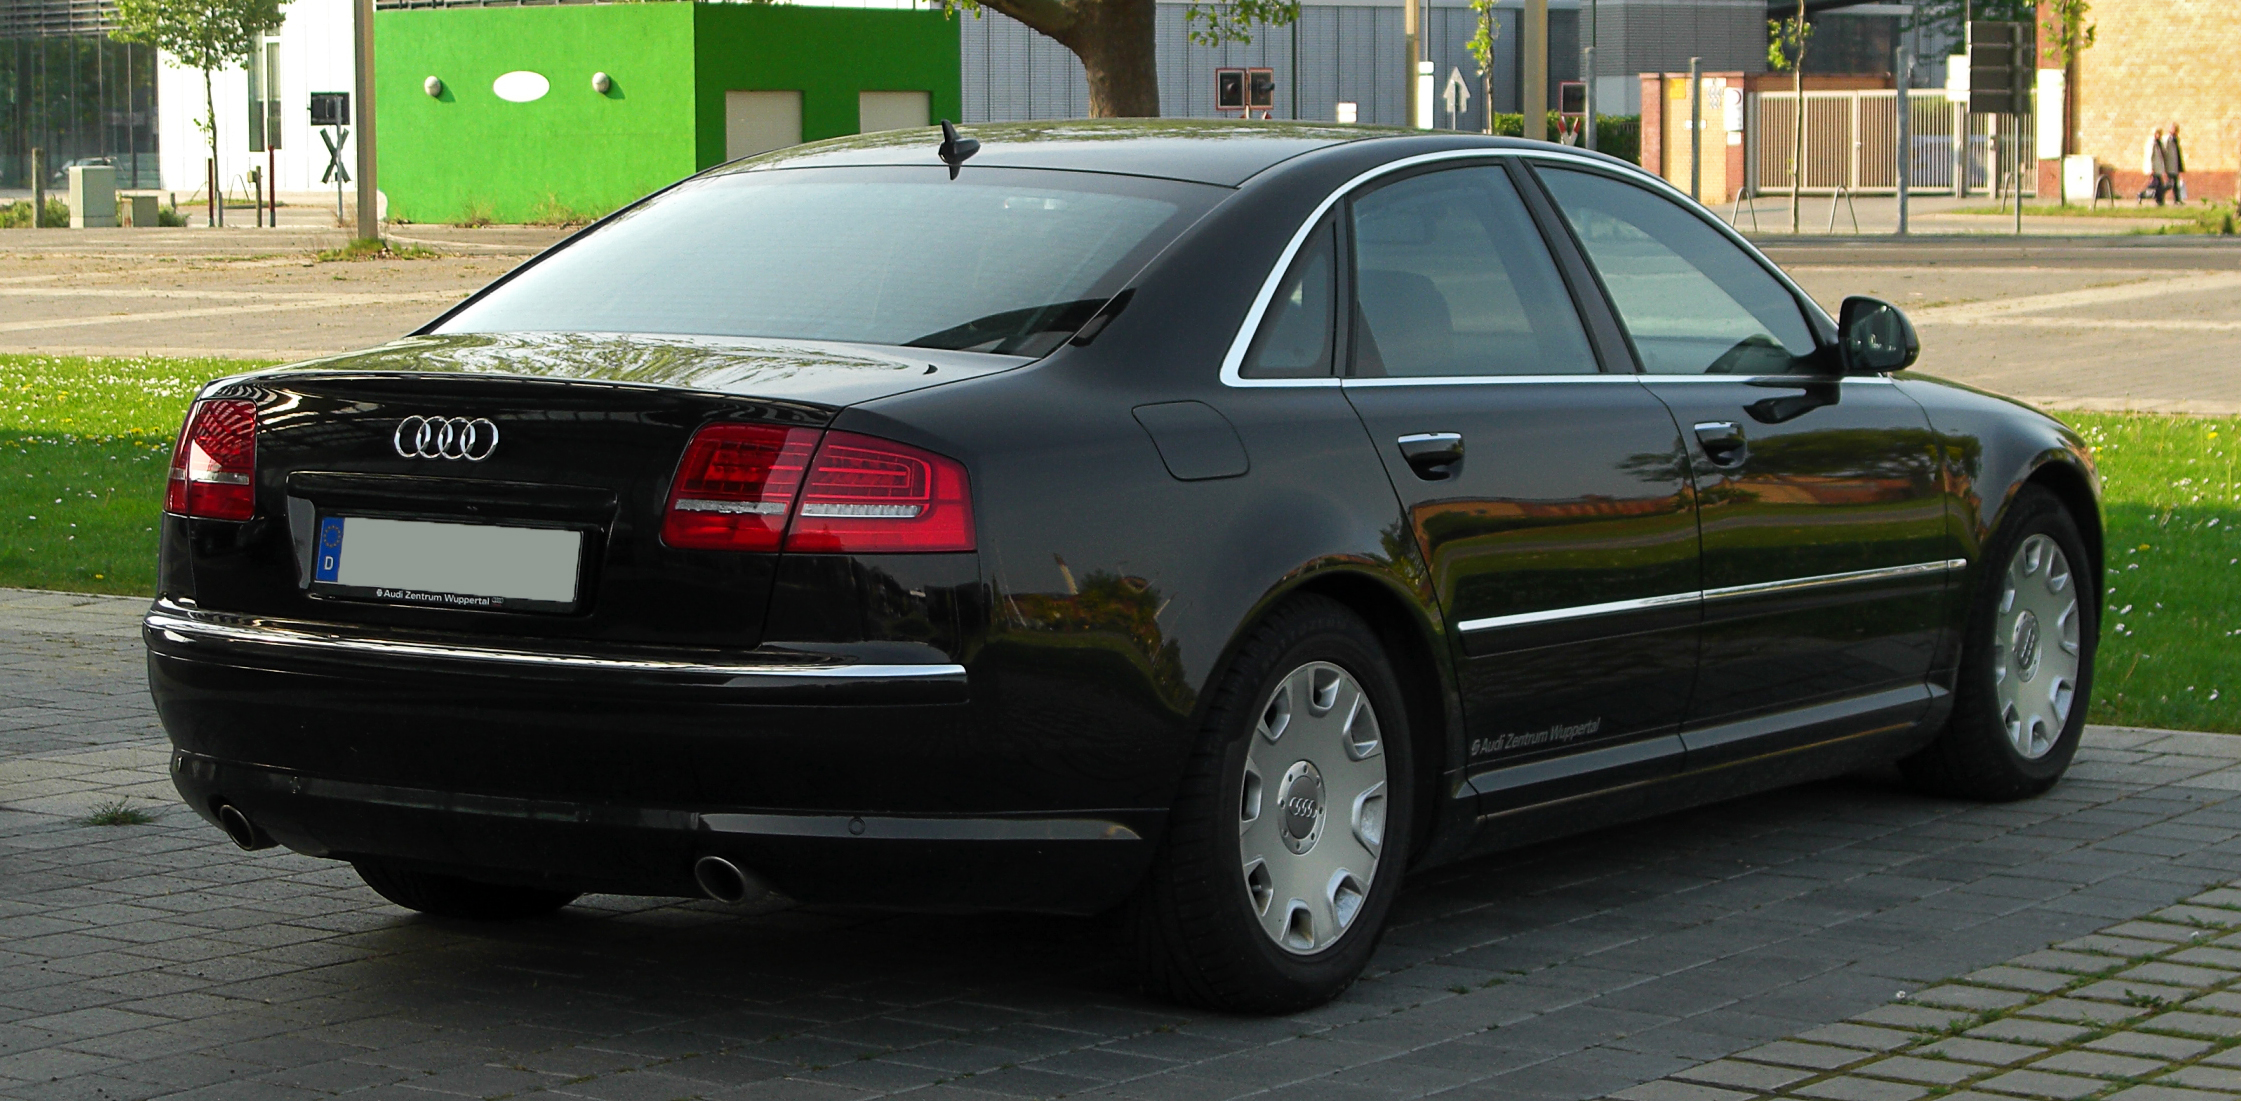 File:Audi A8 quattro (D3, 2. Facelift) – Heckansicht, 30. April 2011 ...